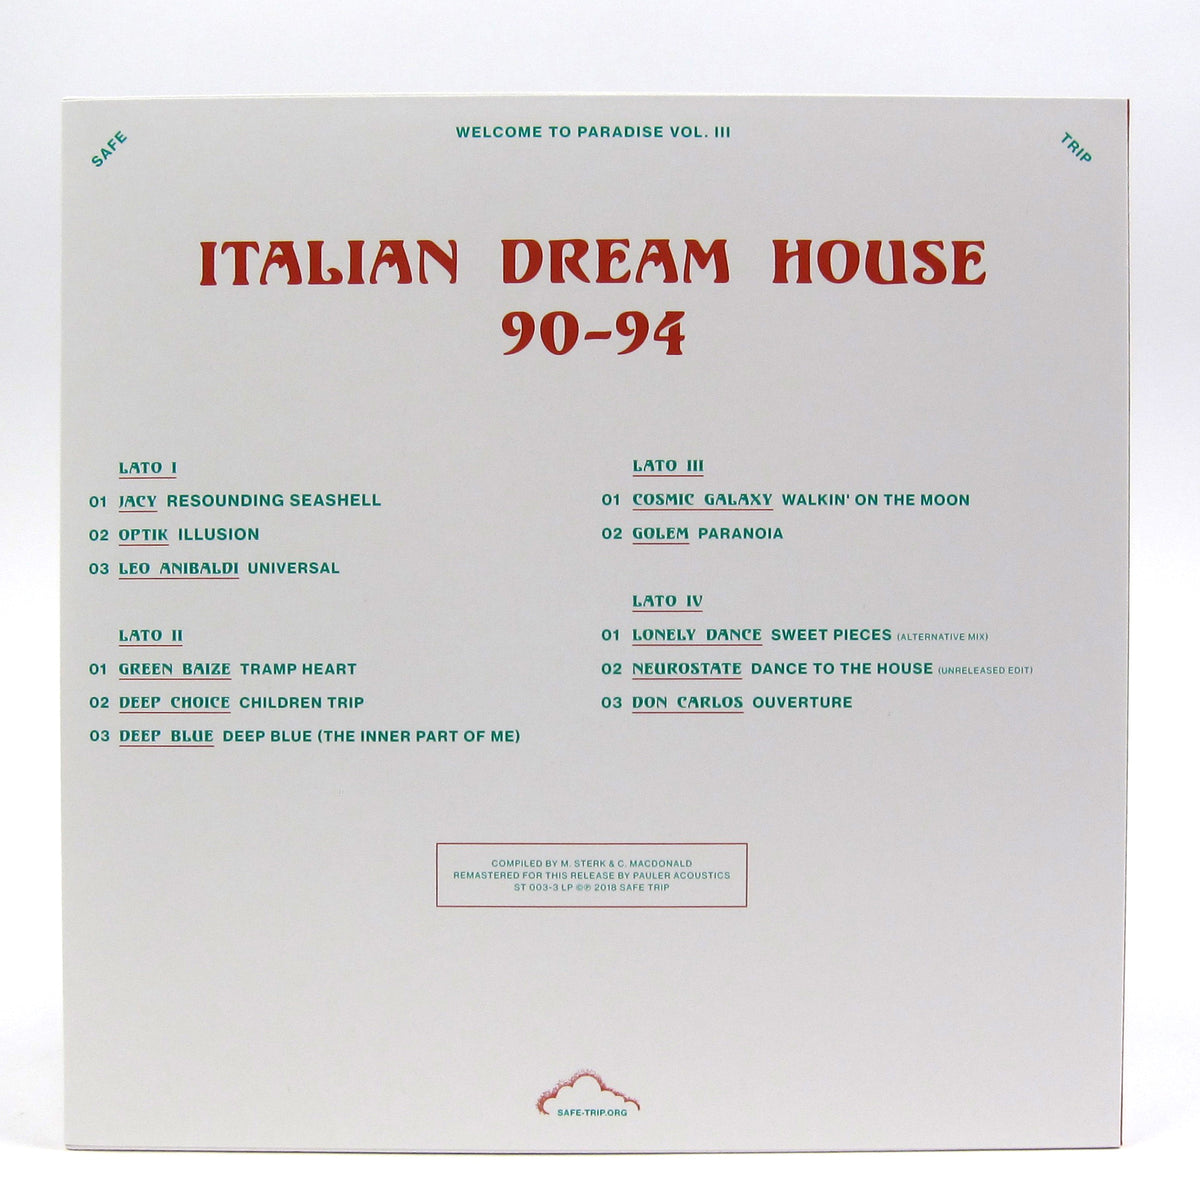 Safe Trip: Welcome To Paradise Vol.III - Italian Dream House 90-94 Vinyl 2LP